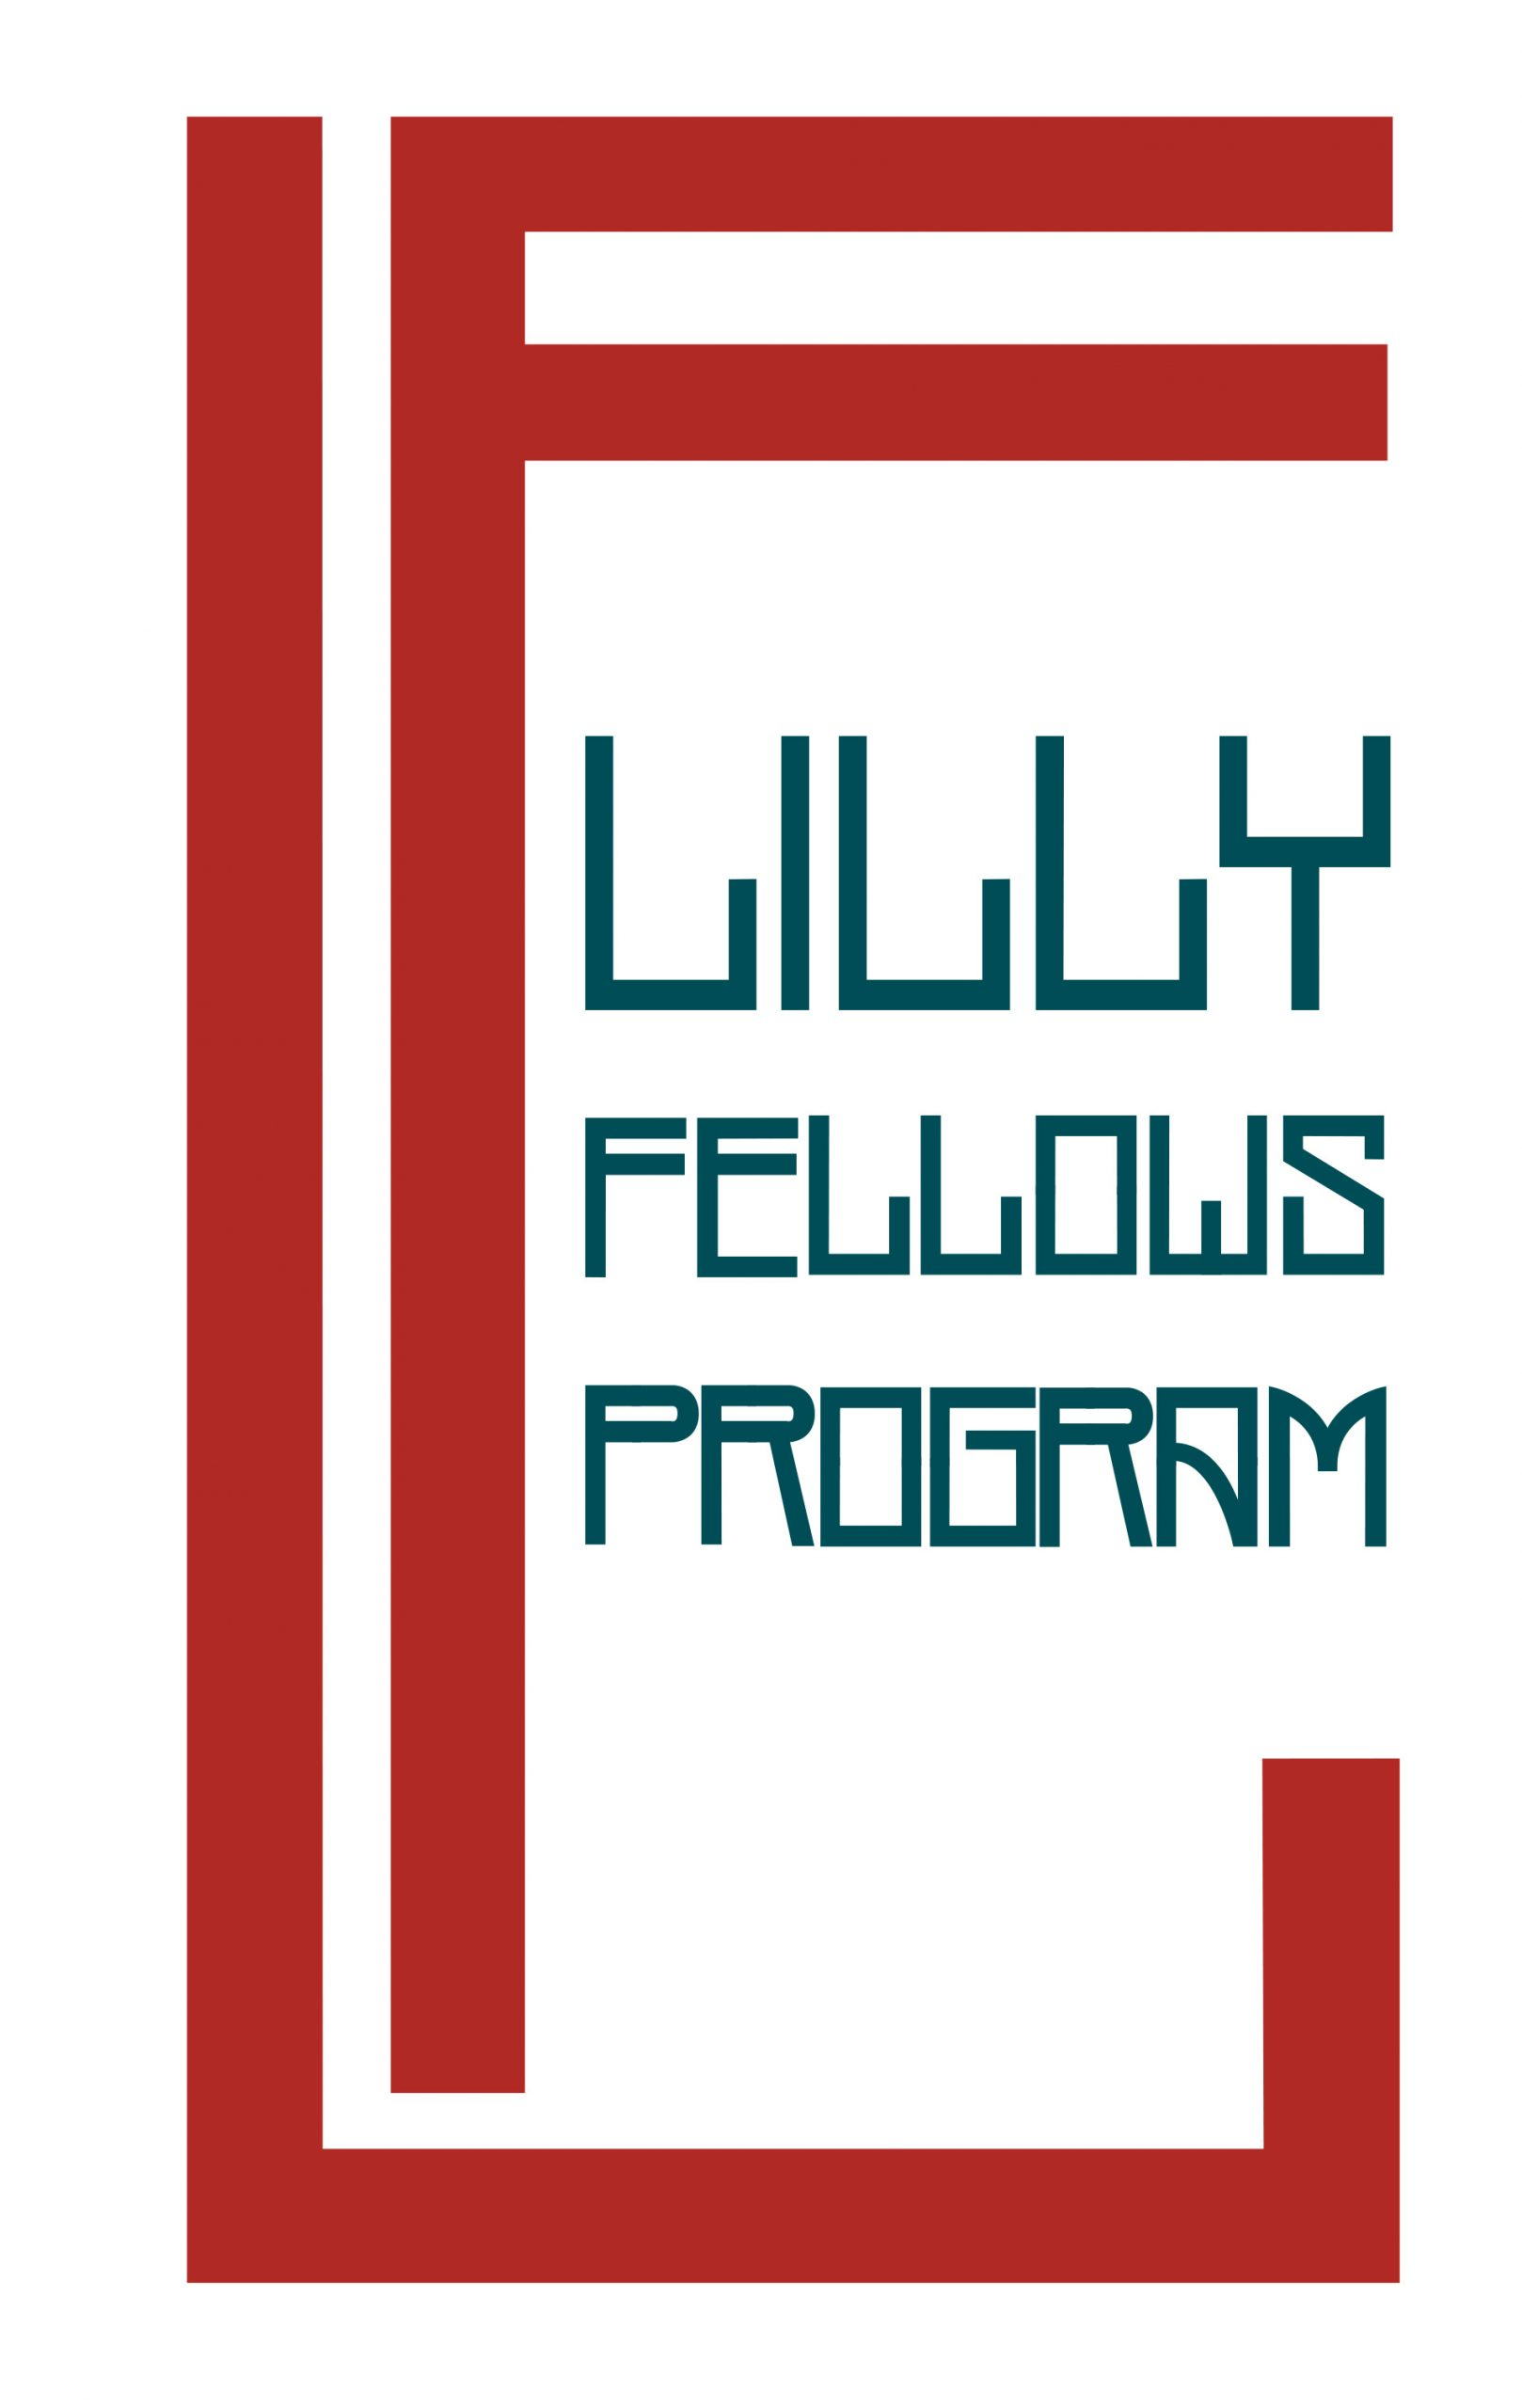 Lilly Fellows Program